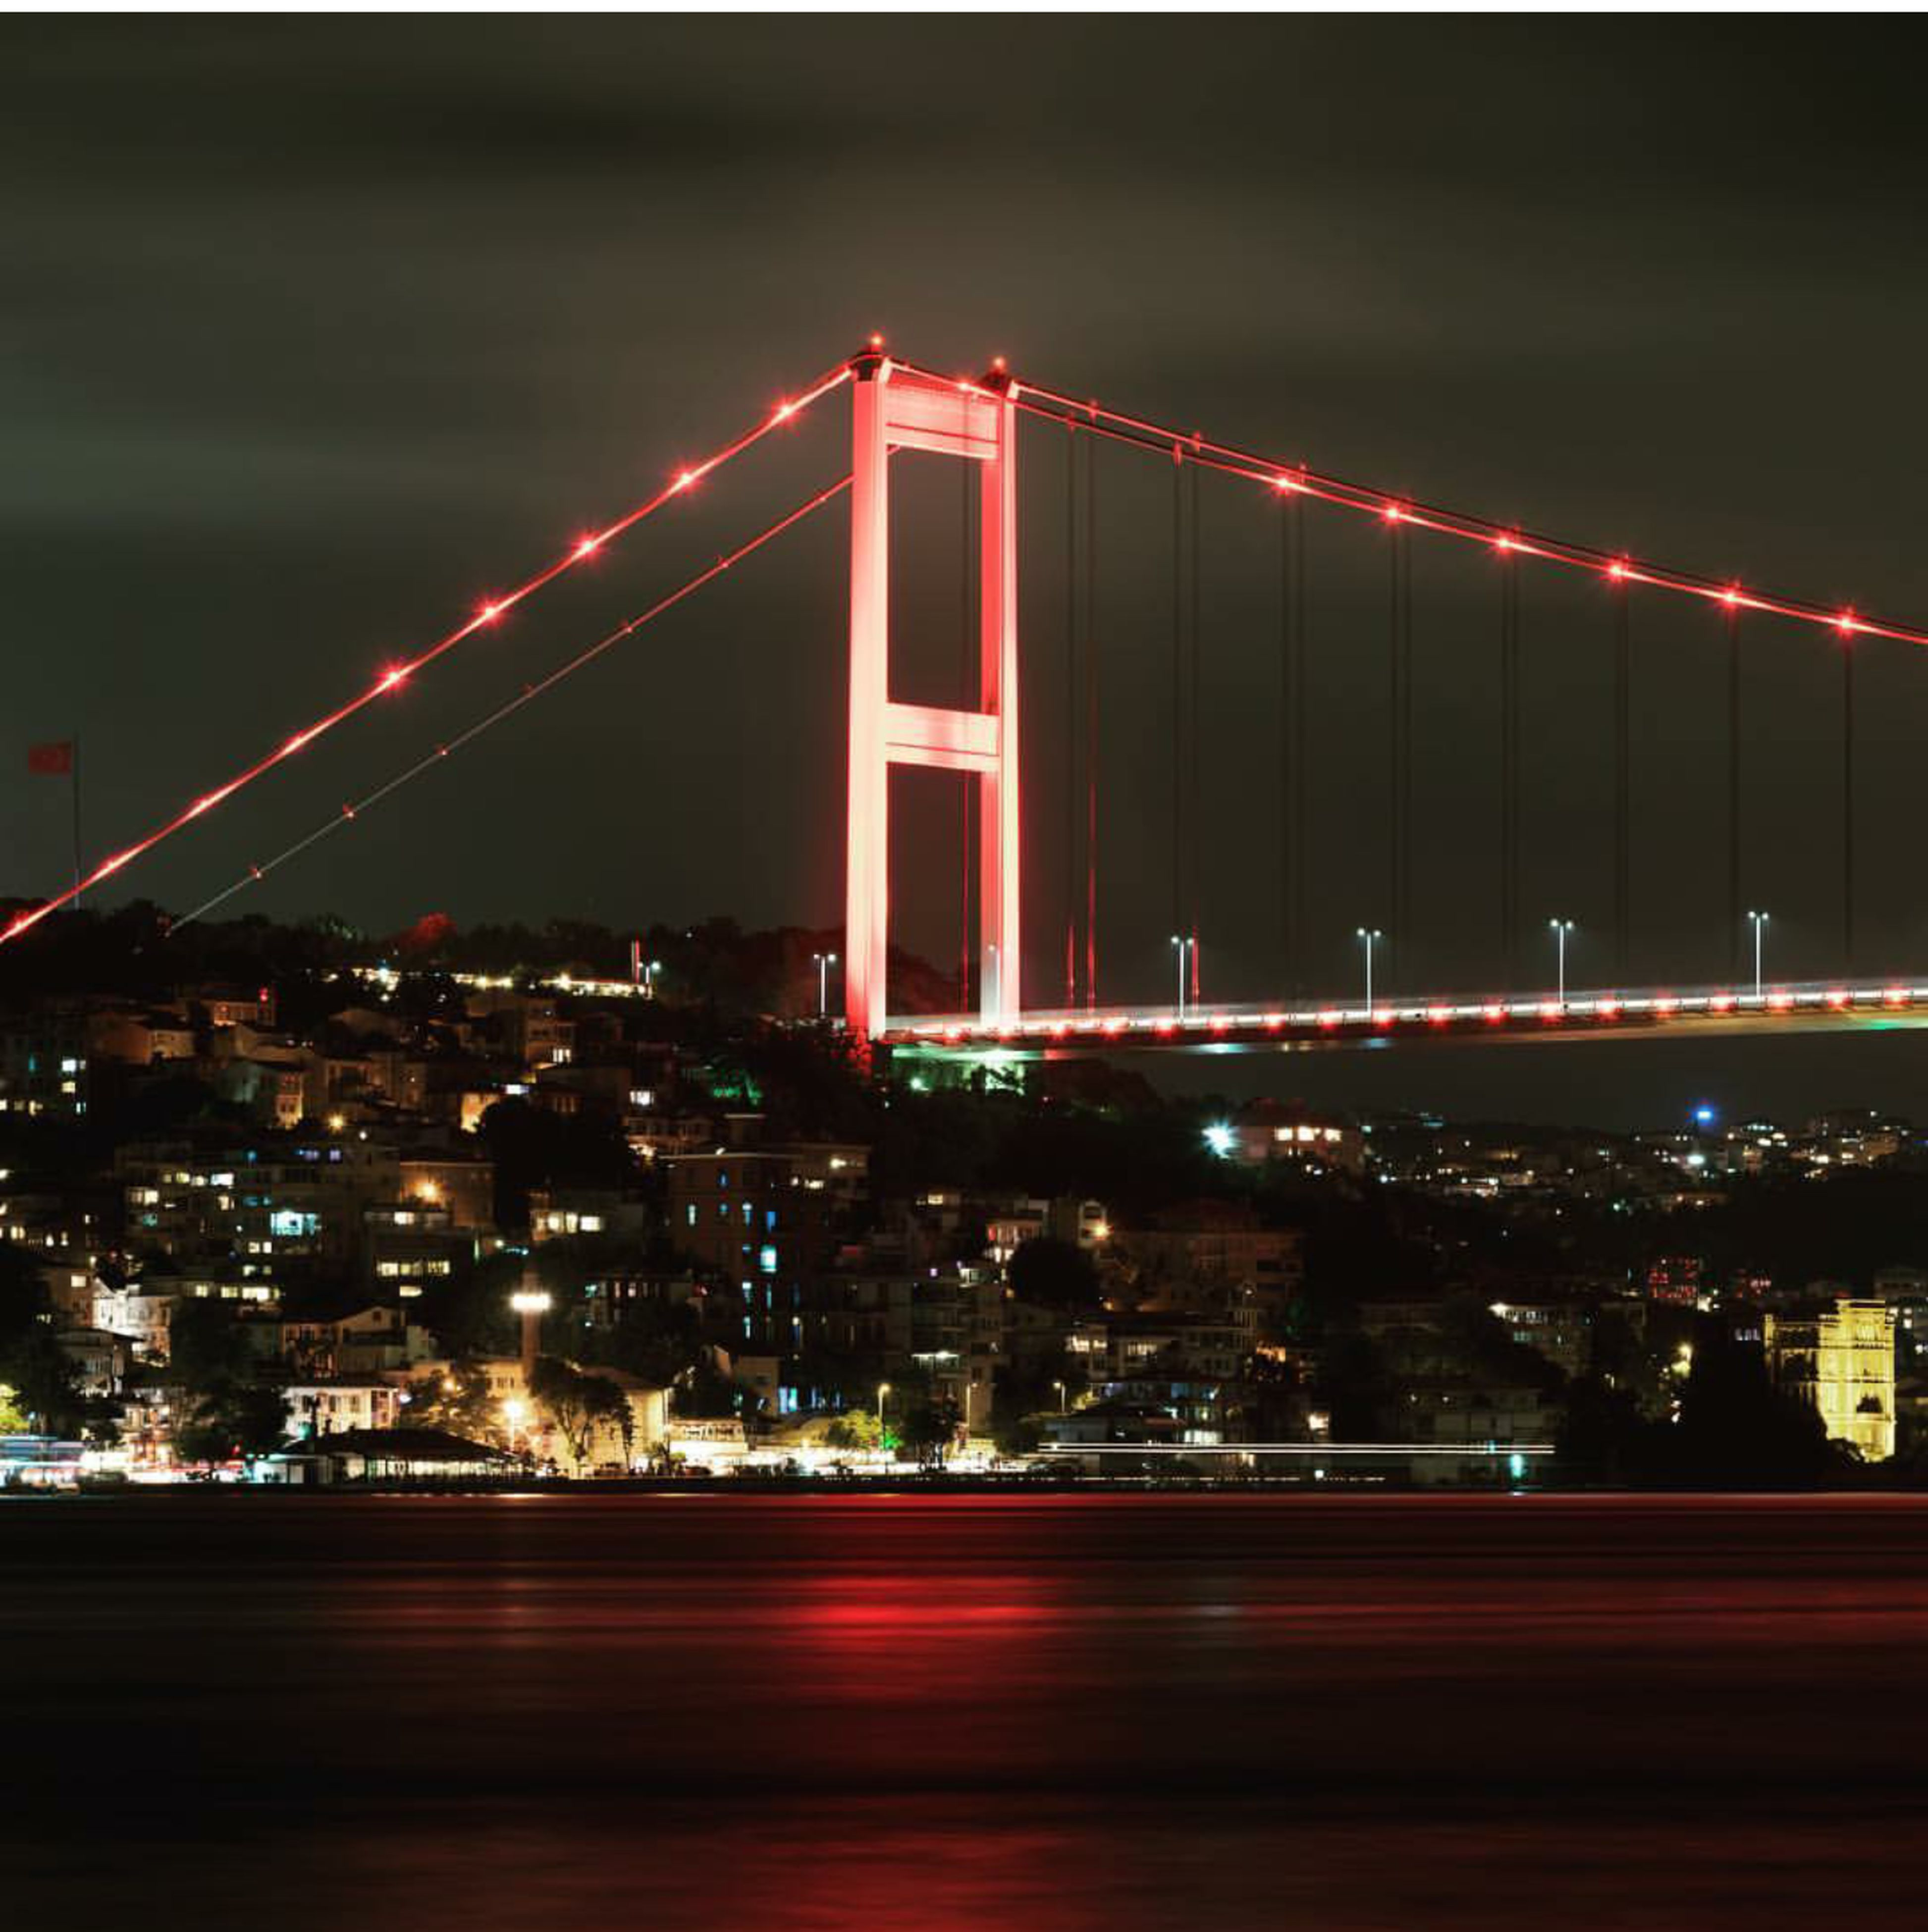 built structure, architecture, illuminated, suspension bridge, bridge - man made structure, tourism, travel destinations, travel, connection, night, famous place, city, international landmark, transportation, engineering, building exterior, golden gate bridge, sky, city life, cloud - sky, outdoors, wide, building story, capital cities, wide shot, residential district, san francisco bay